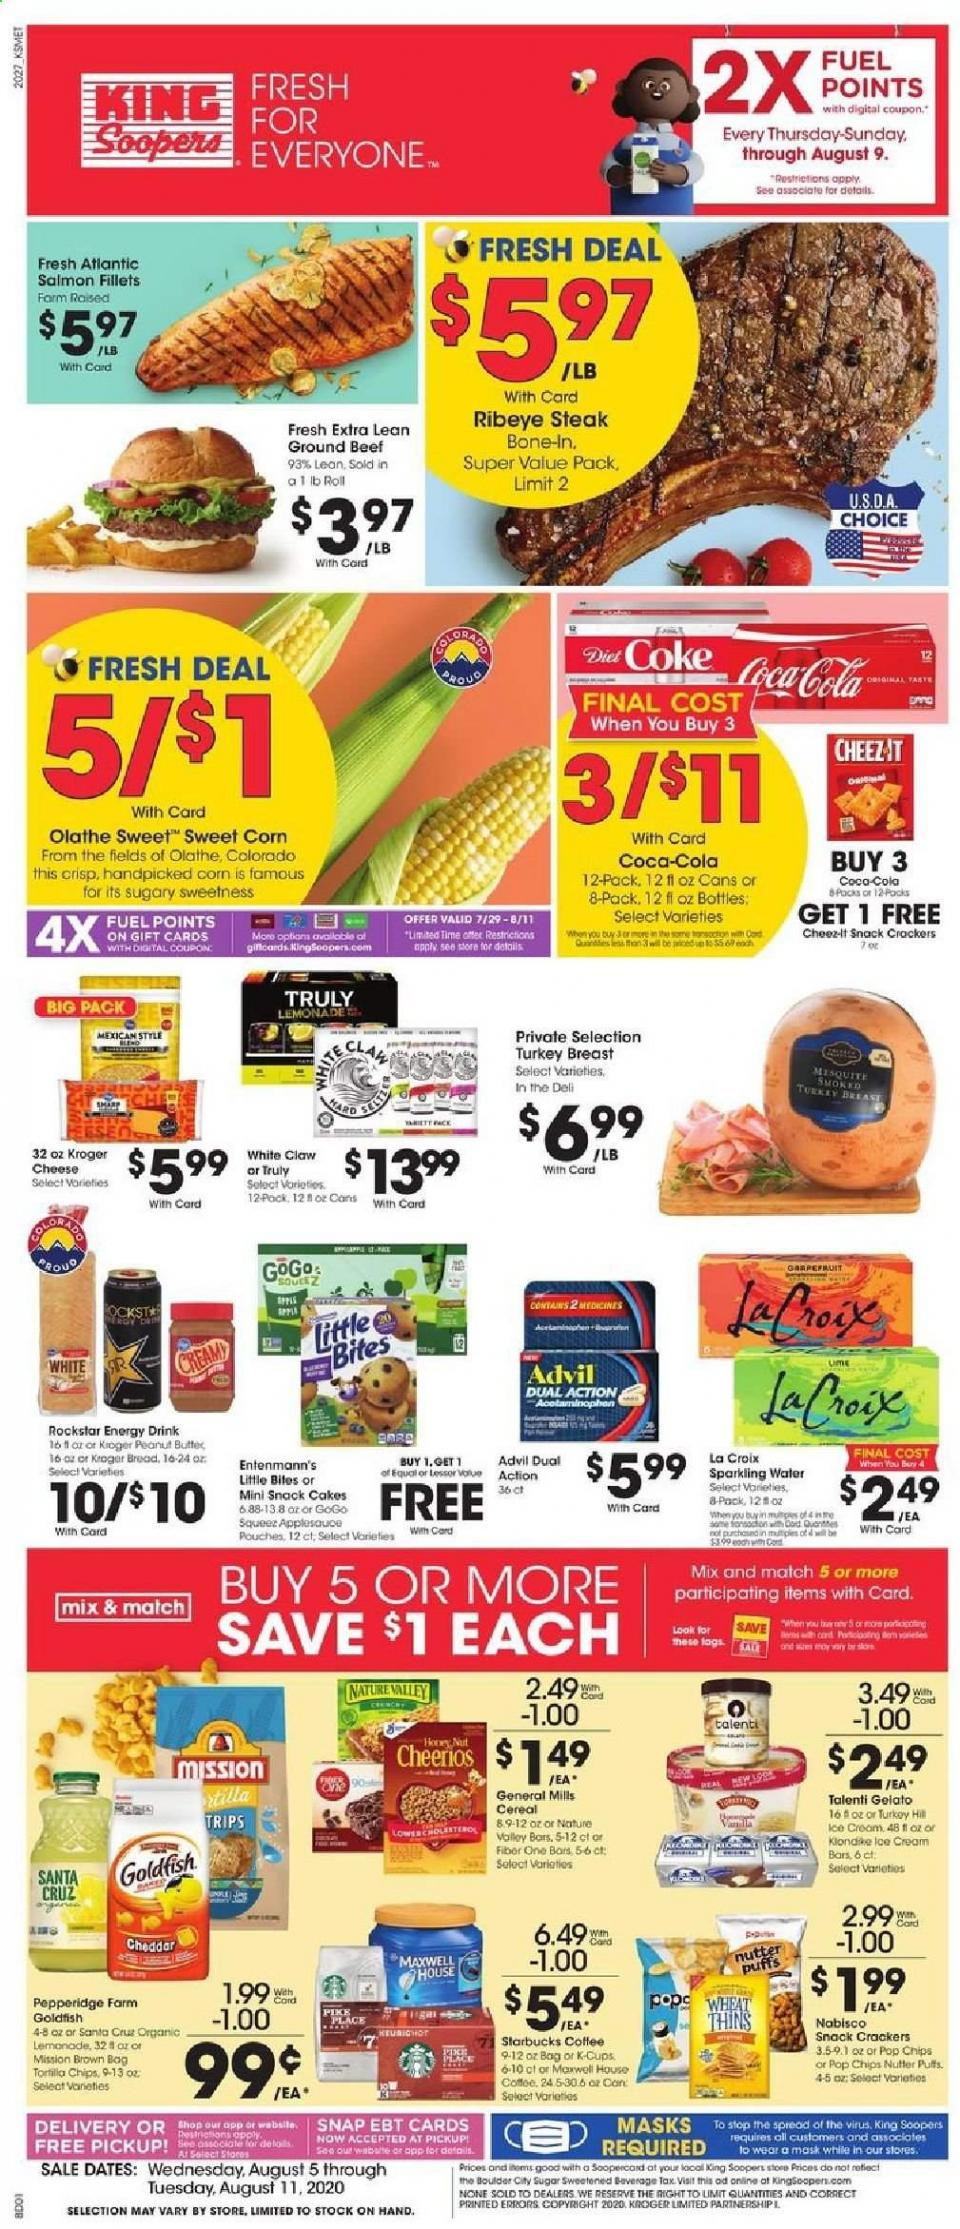 king soopers ad aug 5 2020